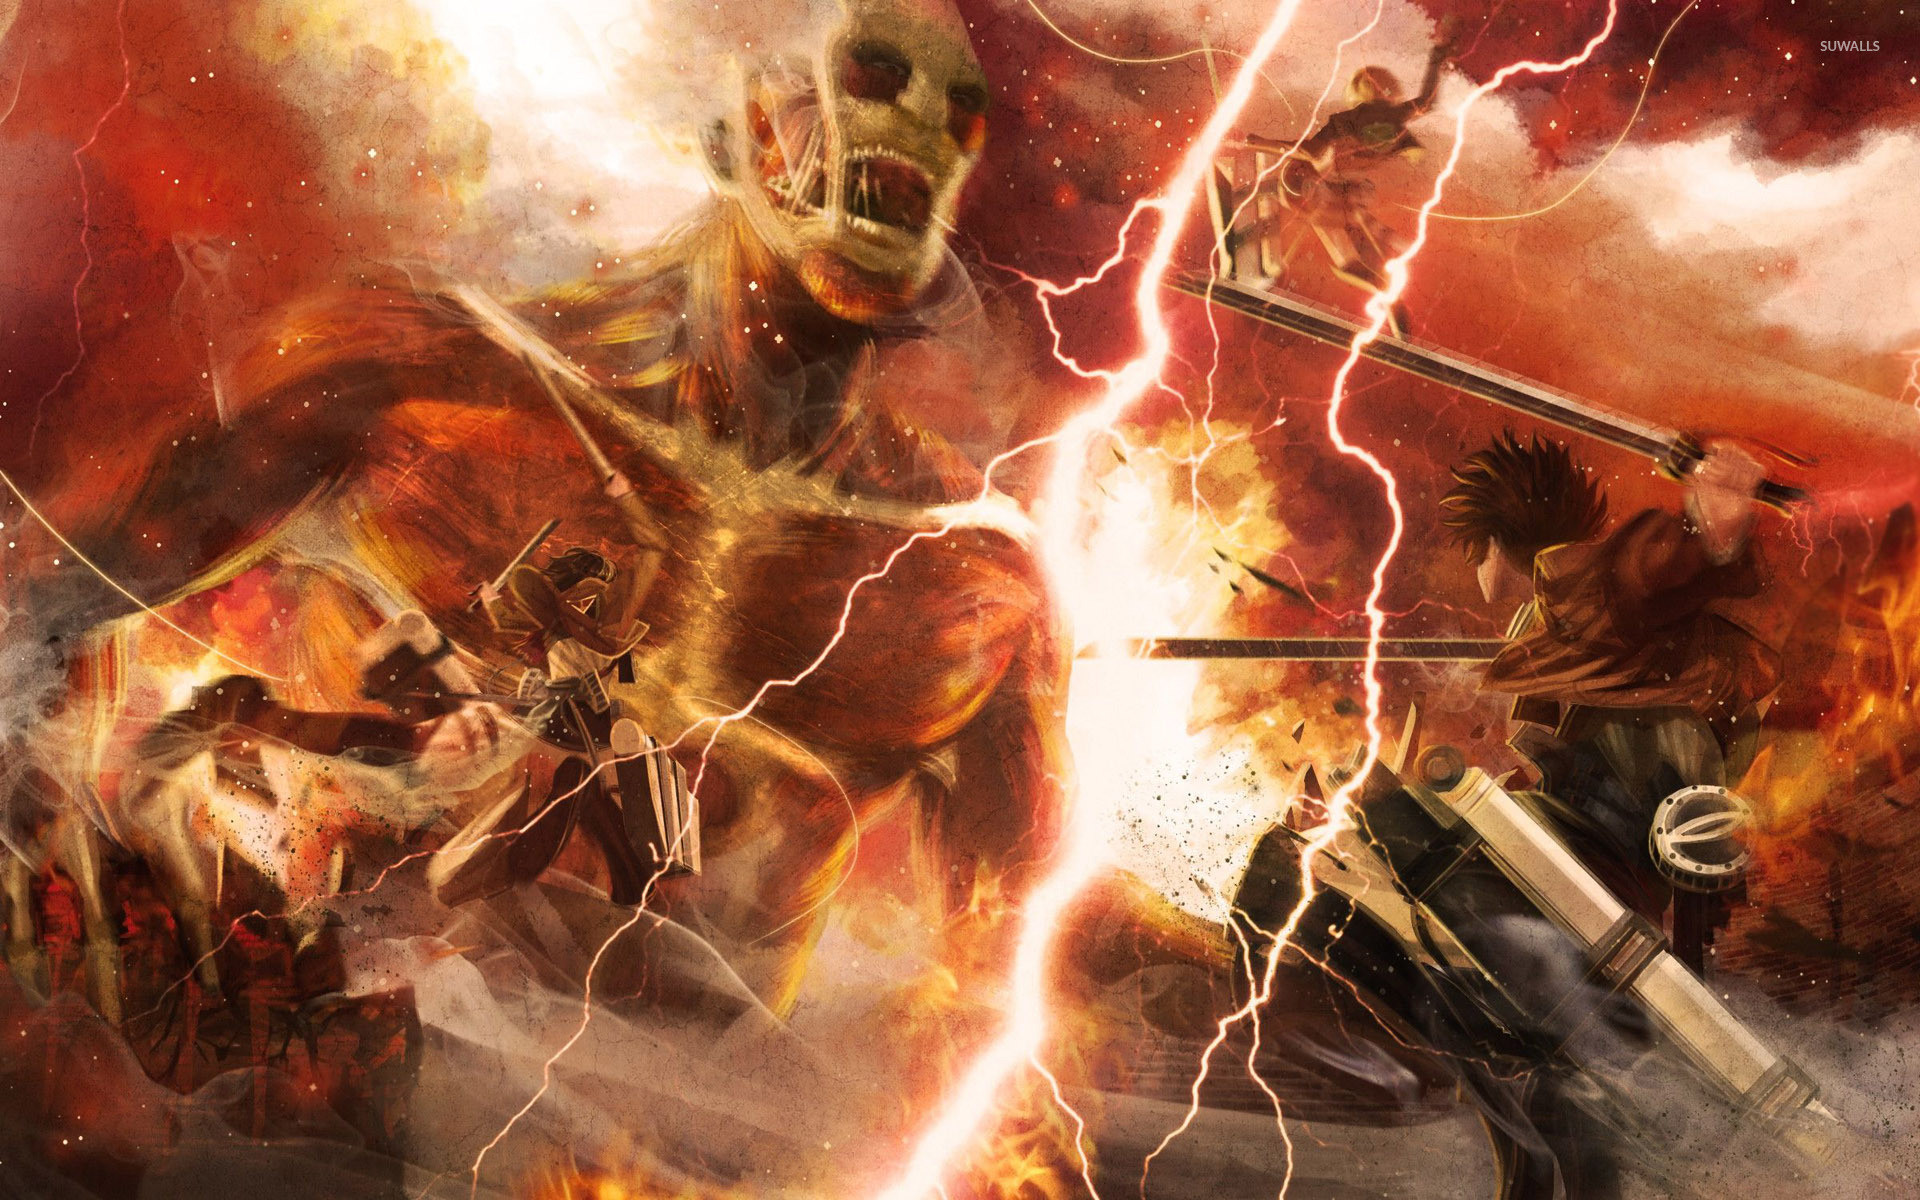 Attack On Titan Wallpaper 1080p Posted By Ethan Cunningham